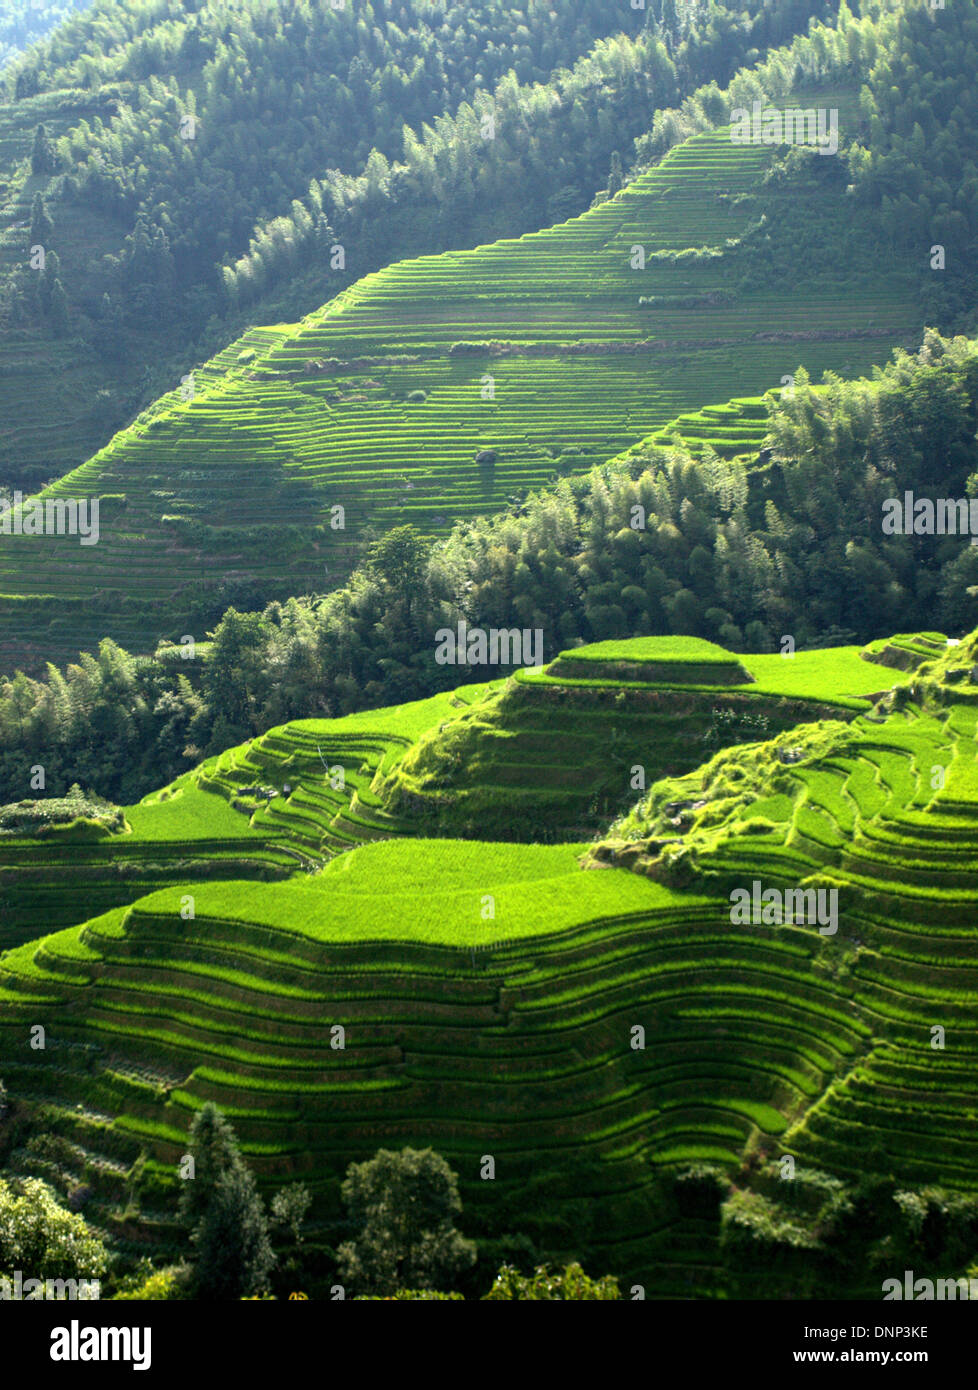 The Longsheng Rice Terraces (Lóngshèng Tītián) or Dragon's Backbone Rice Terraces, located in Longsheng County, Stock Photo